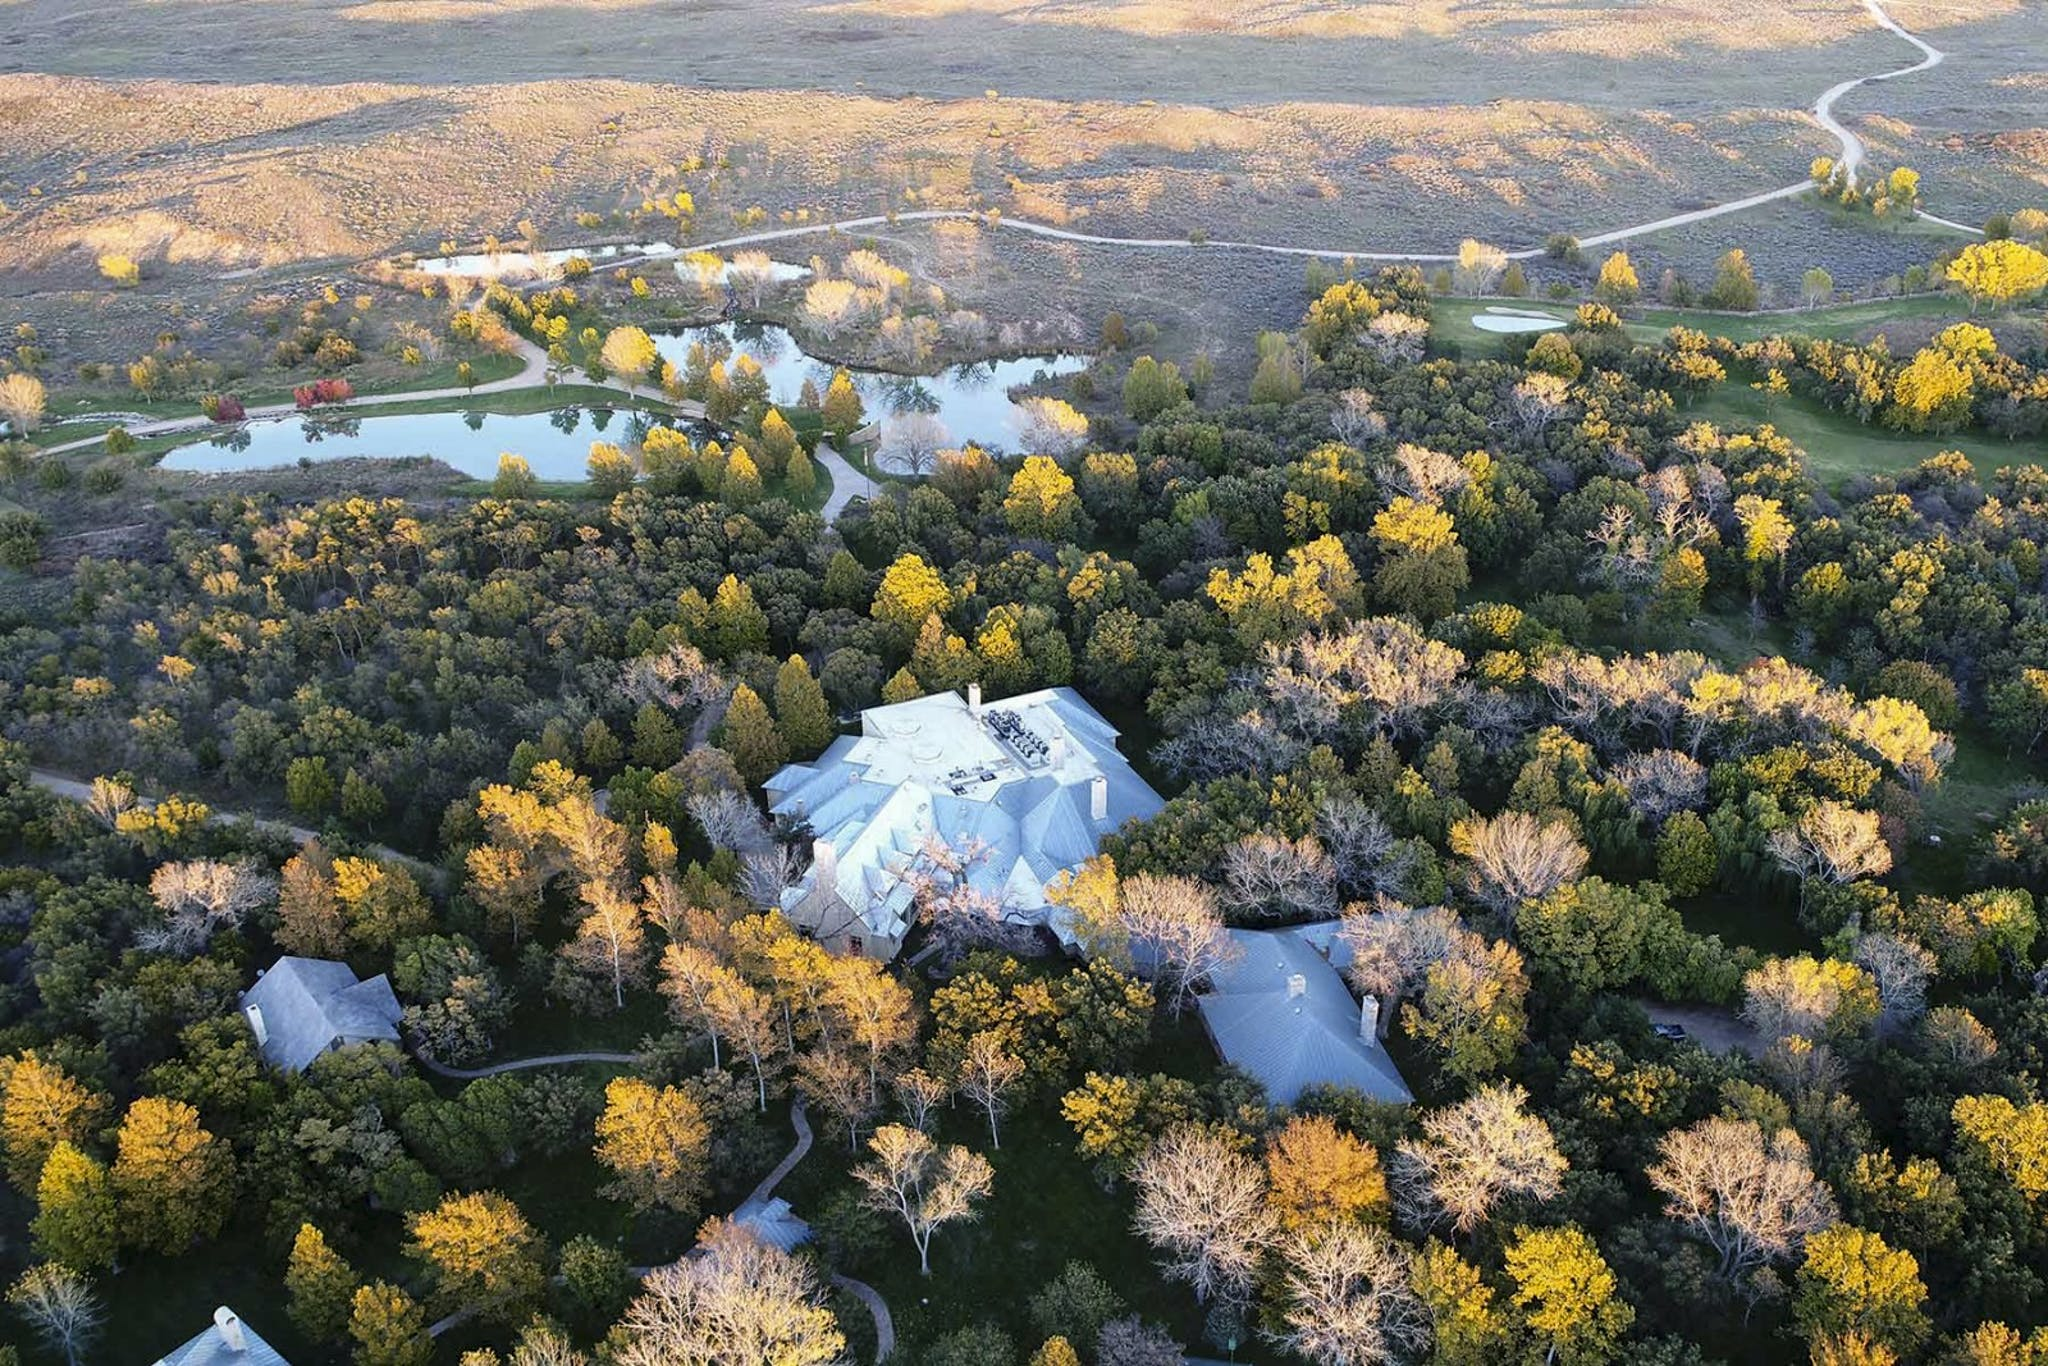 T. Boone Pickens's ranch